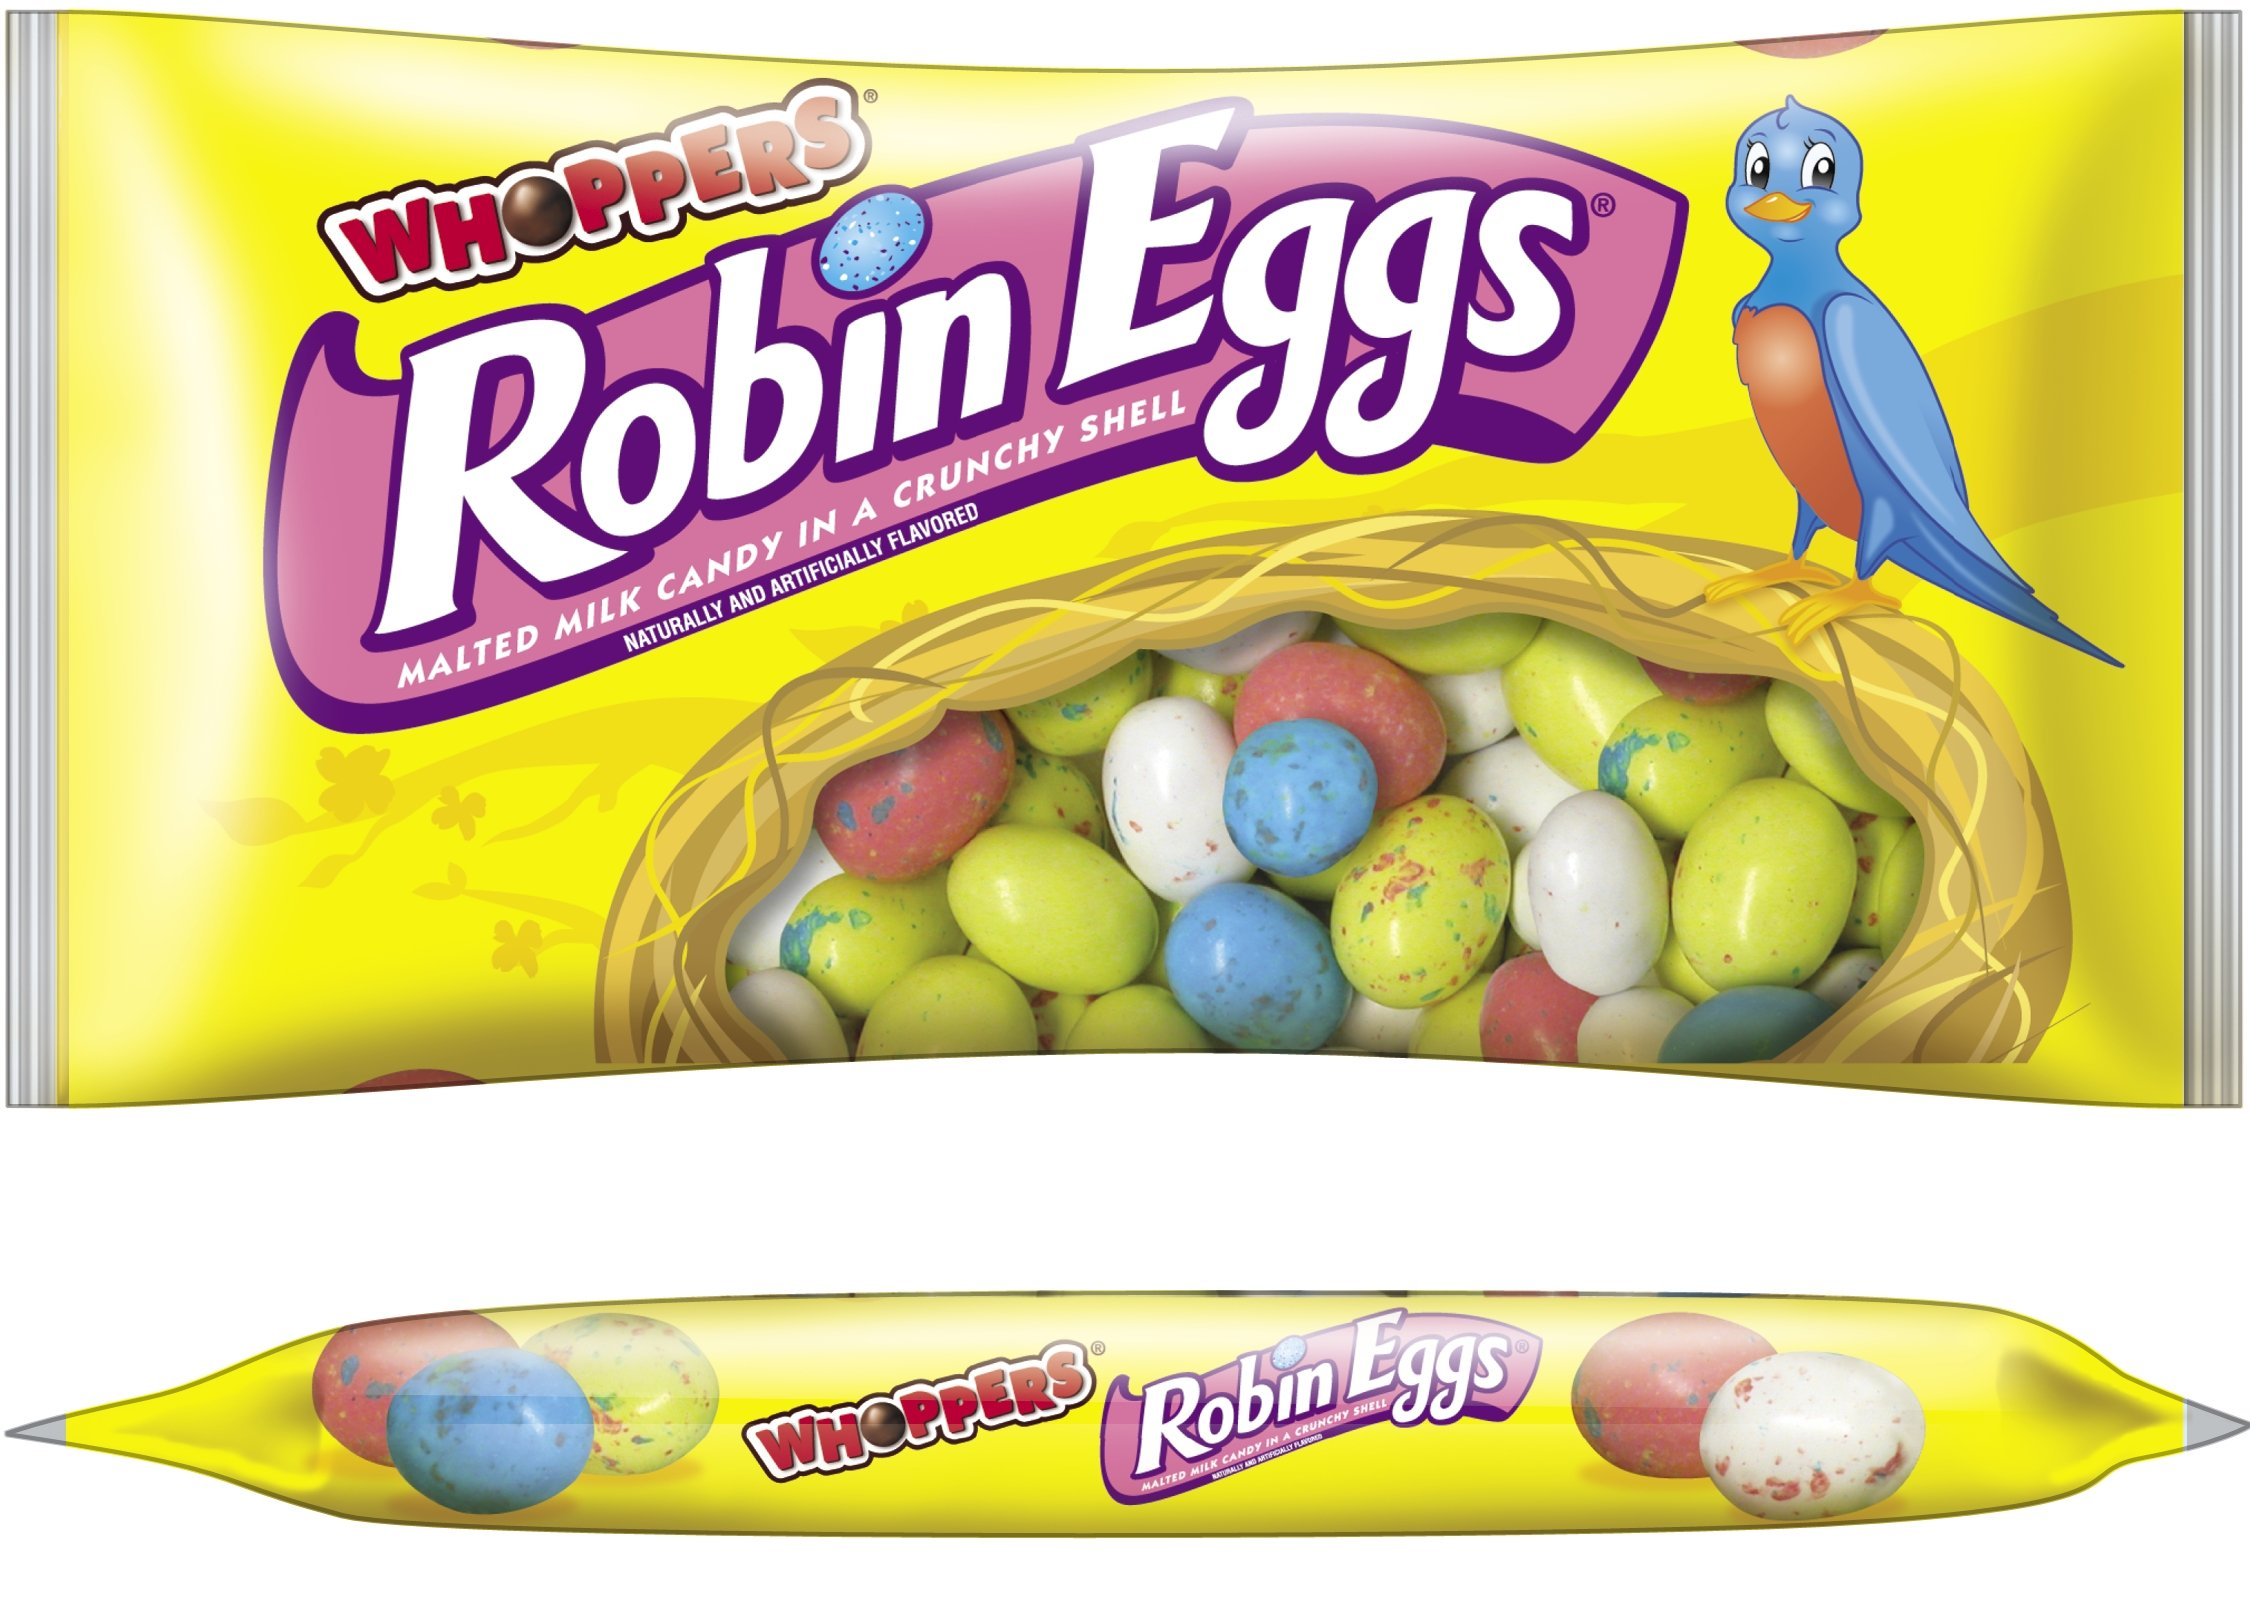 CDM product WHOPPERS ROBIN EGGS Candy (Malted Milk Candy in a Crunchy Shell), 10 Ounce Bag (Pack of 8) big image